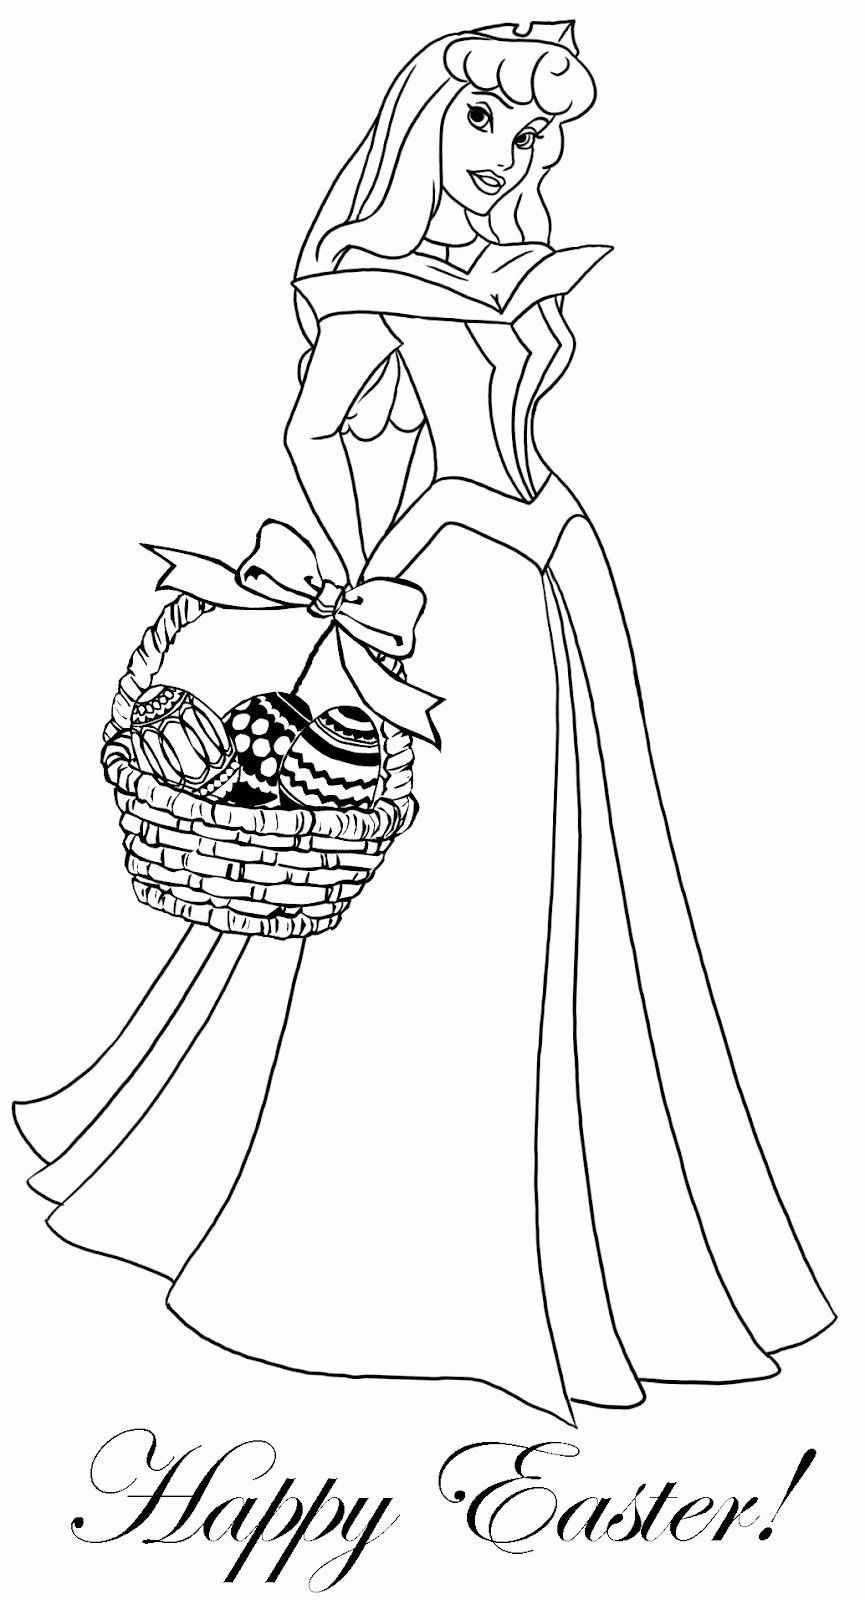 Princess Coloring Pages Disney Best Of Princess Coloring Pages Princess Coloring Pages Disney Princess Coloring Pages Princess Coloring